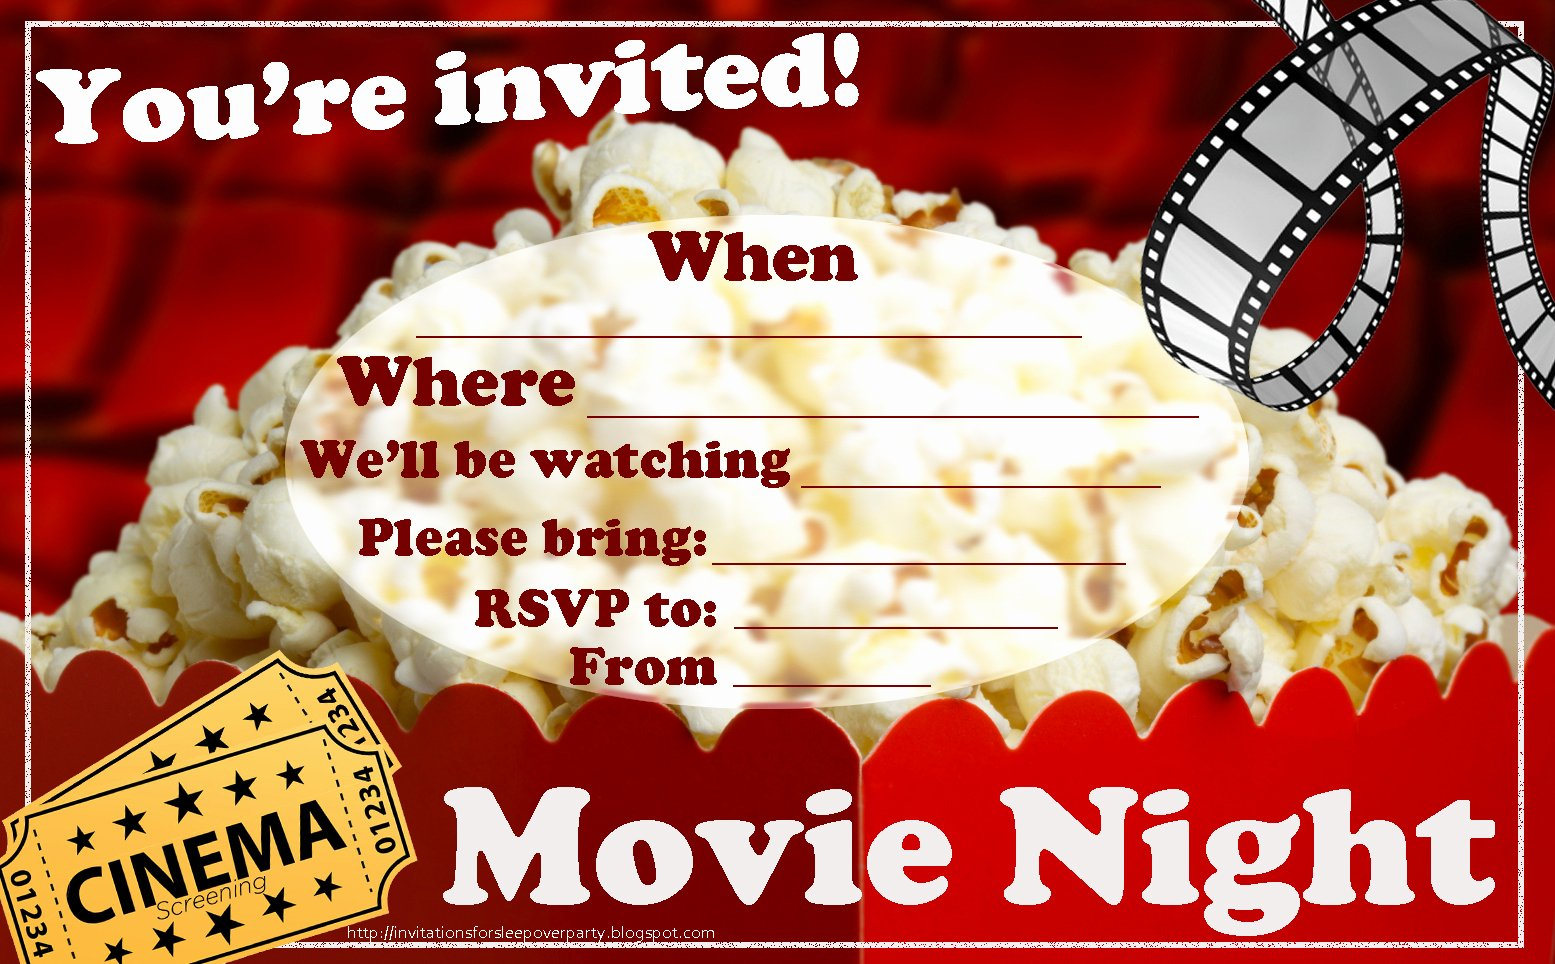 Movie Night Invitation Template Fresh Invitations for Sleepover Party